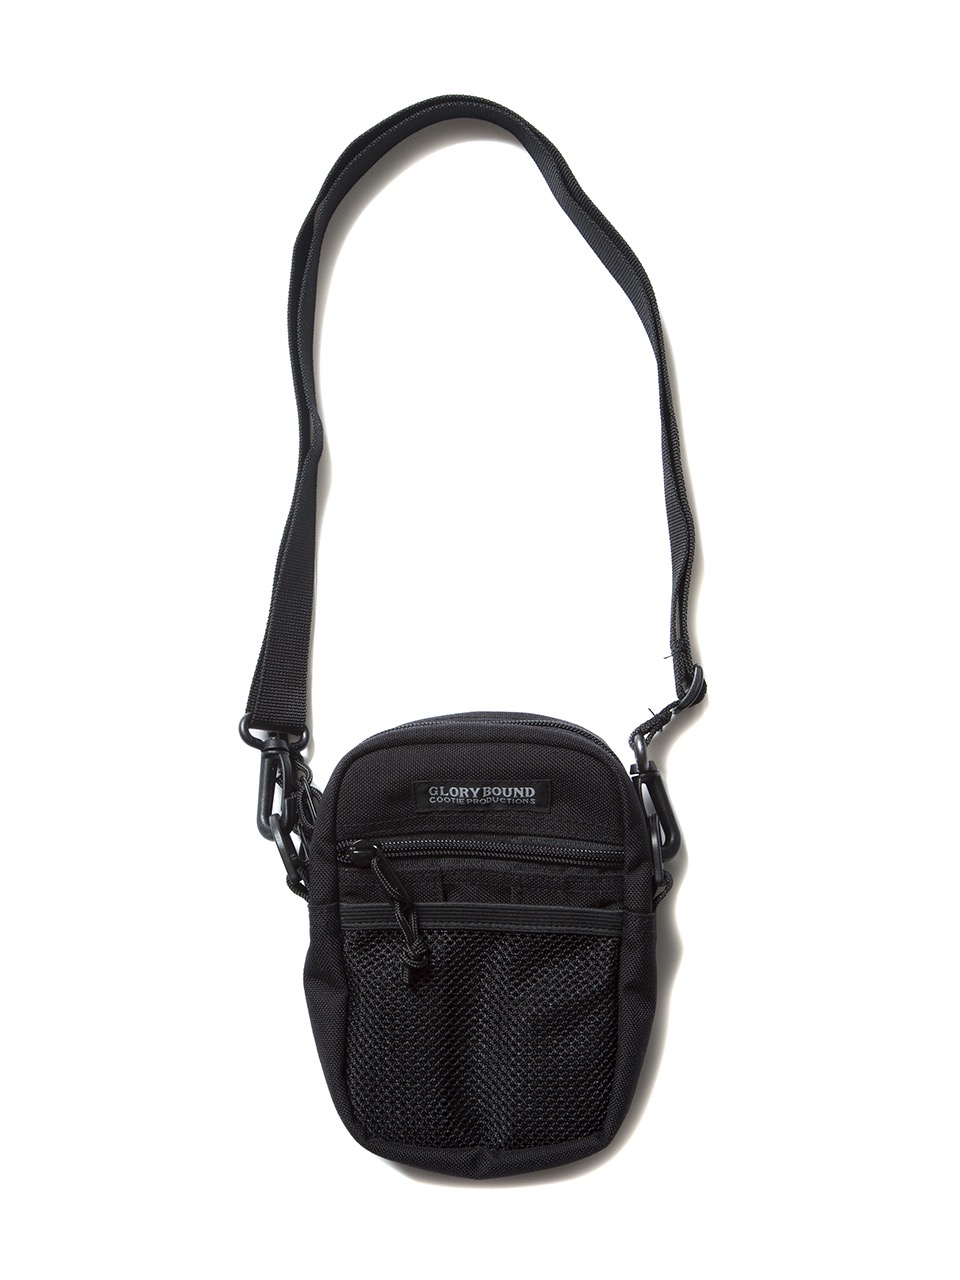 COOTIE Death Bowl Shoulder Bag